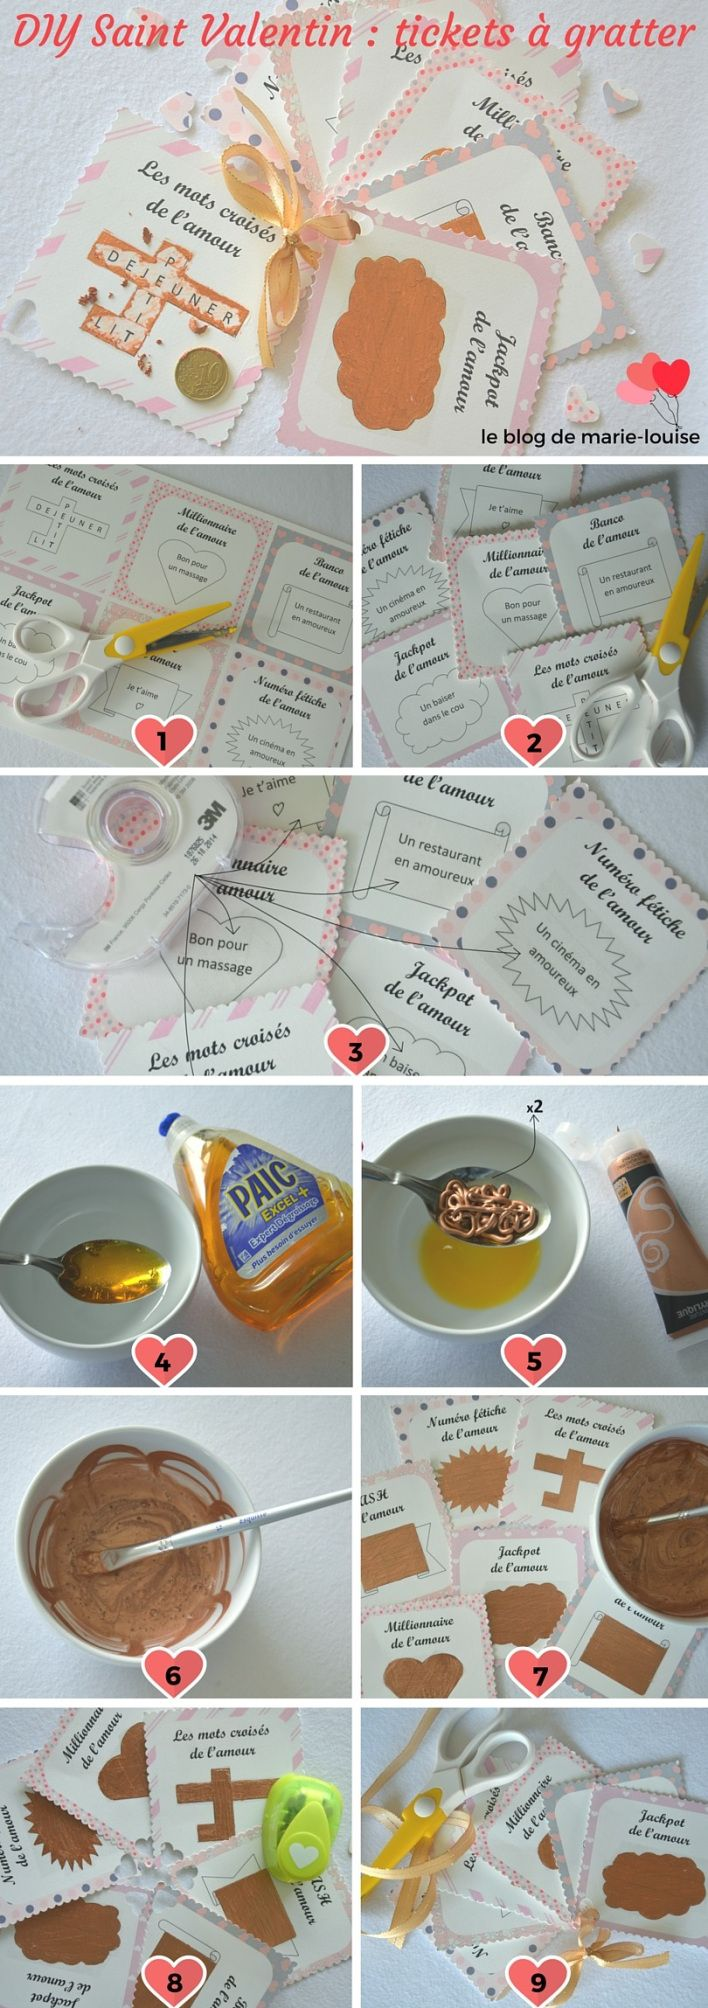 Les 25 meilleures id es de la cat gorie cartes de no l sur pinterest diy cartes de no l for Idees pour la maison